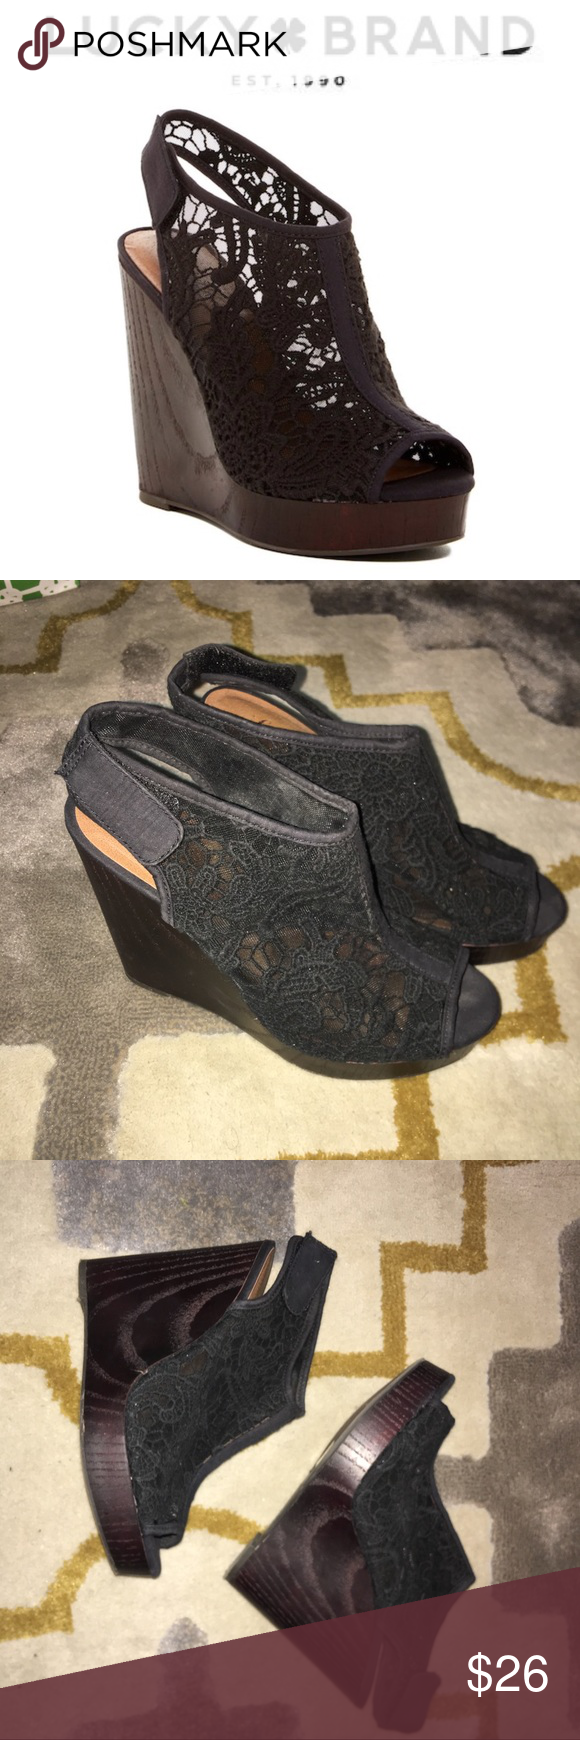 3a18b87655a Lucky Brand Wedges Lucky Brand Rezdah 2 Lace Platform Wedge Sandal Size   8.5 Features